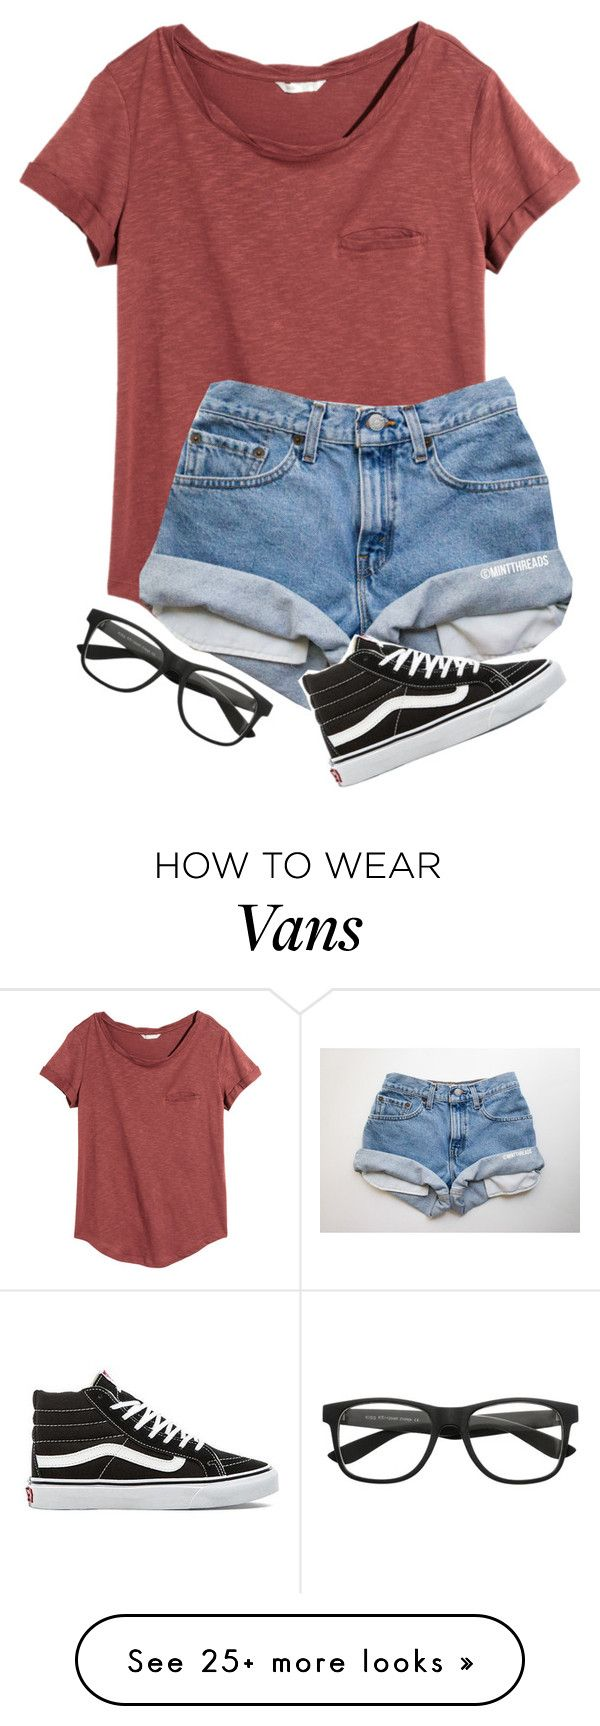 how to wear high top vans with shorts